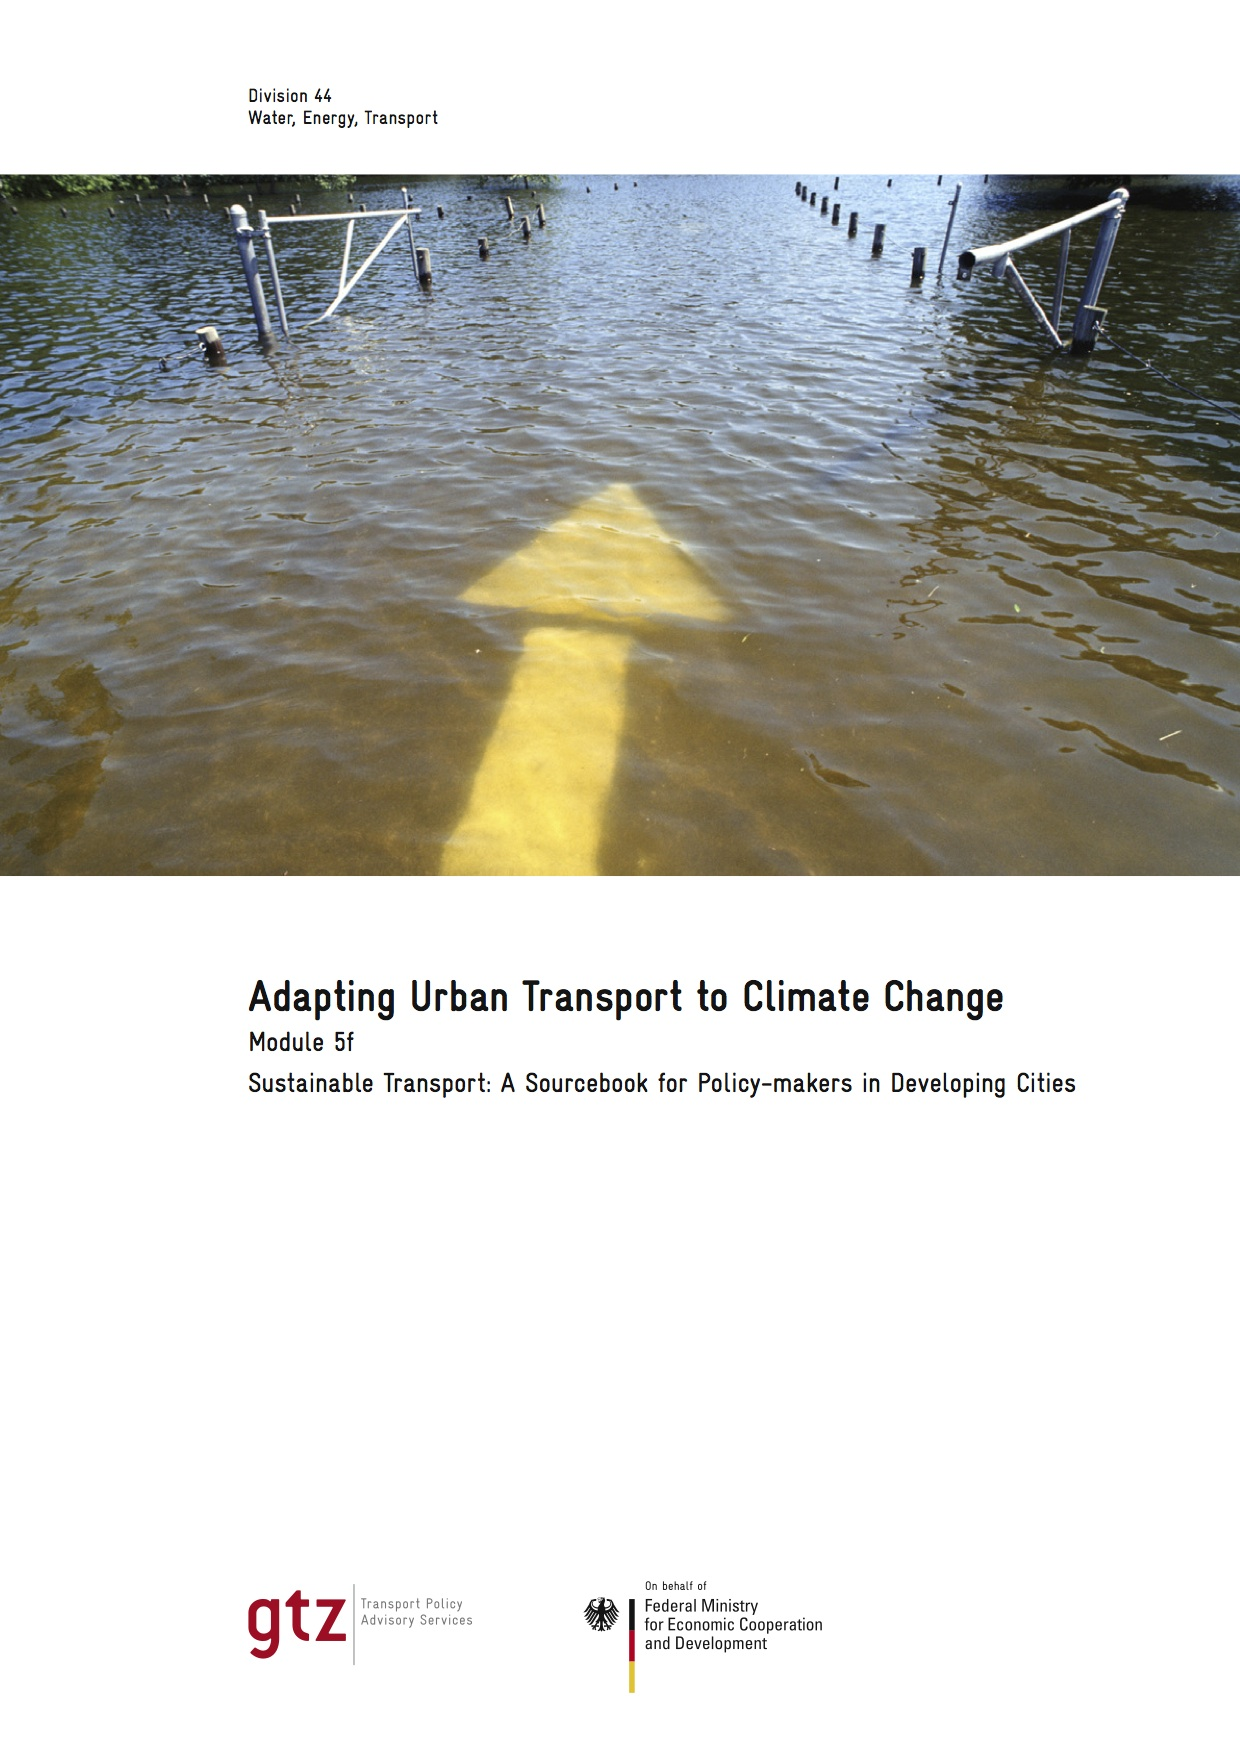 GIZ-Module-5f_Adapting-Urban-Transport-to-Climate-Change